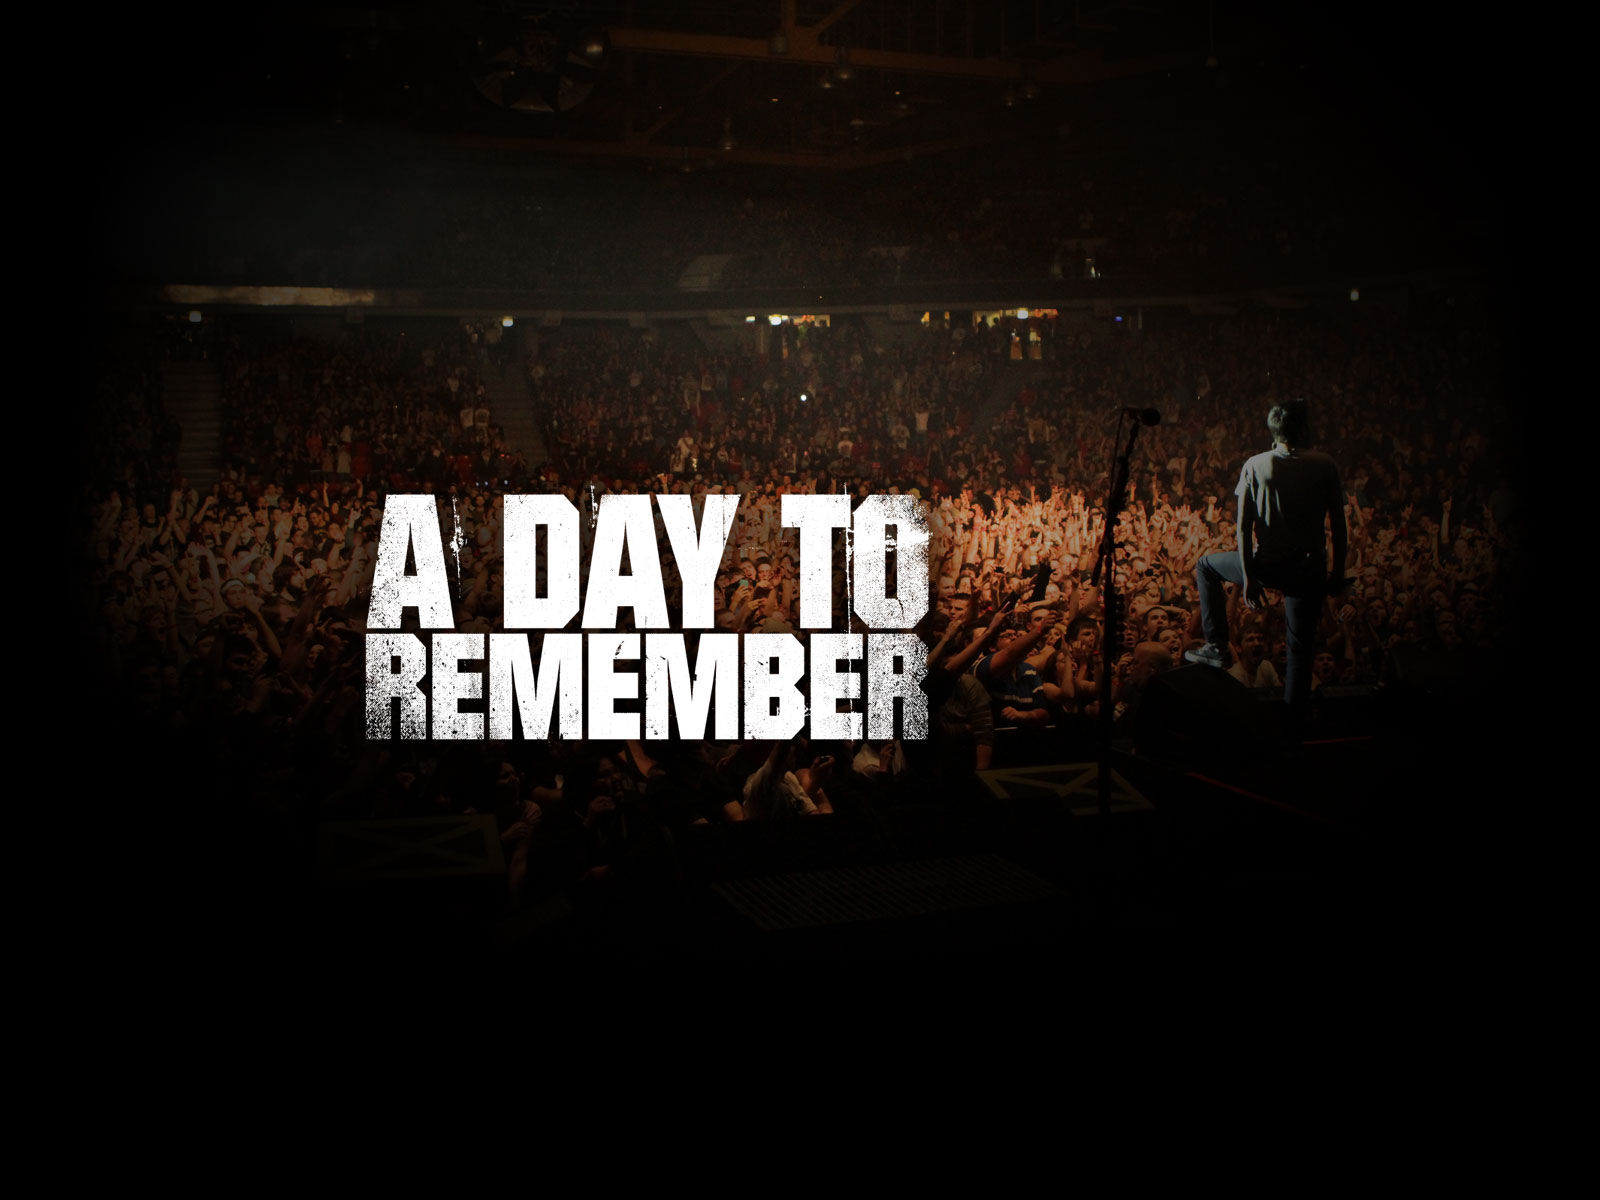 A Day To Remember Wallpaper 2114 1600x1200px